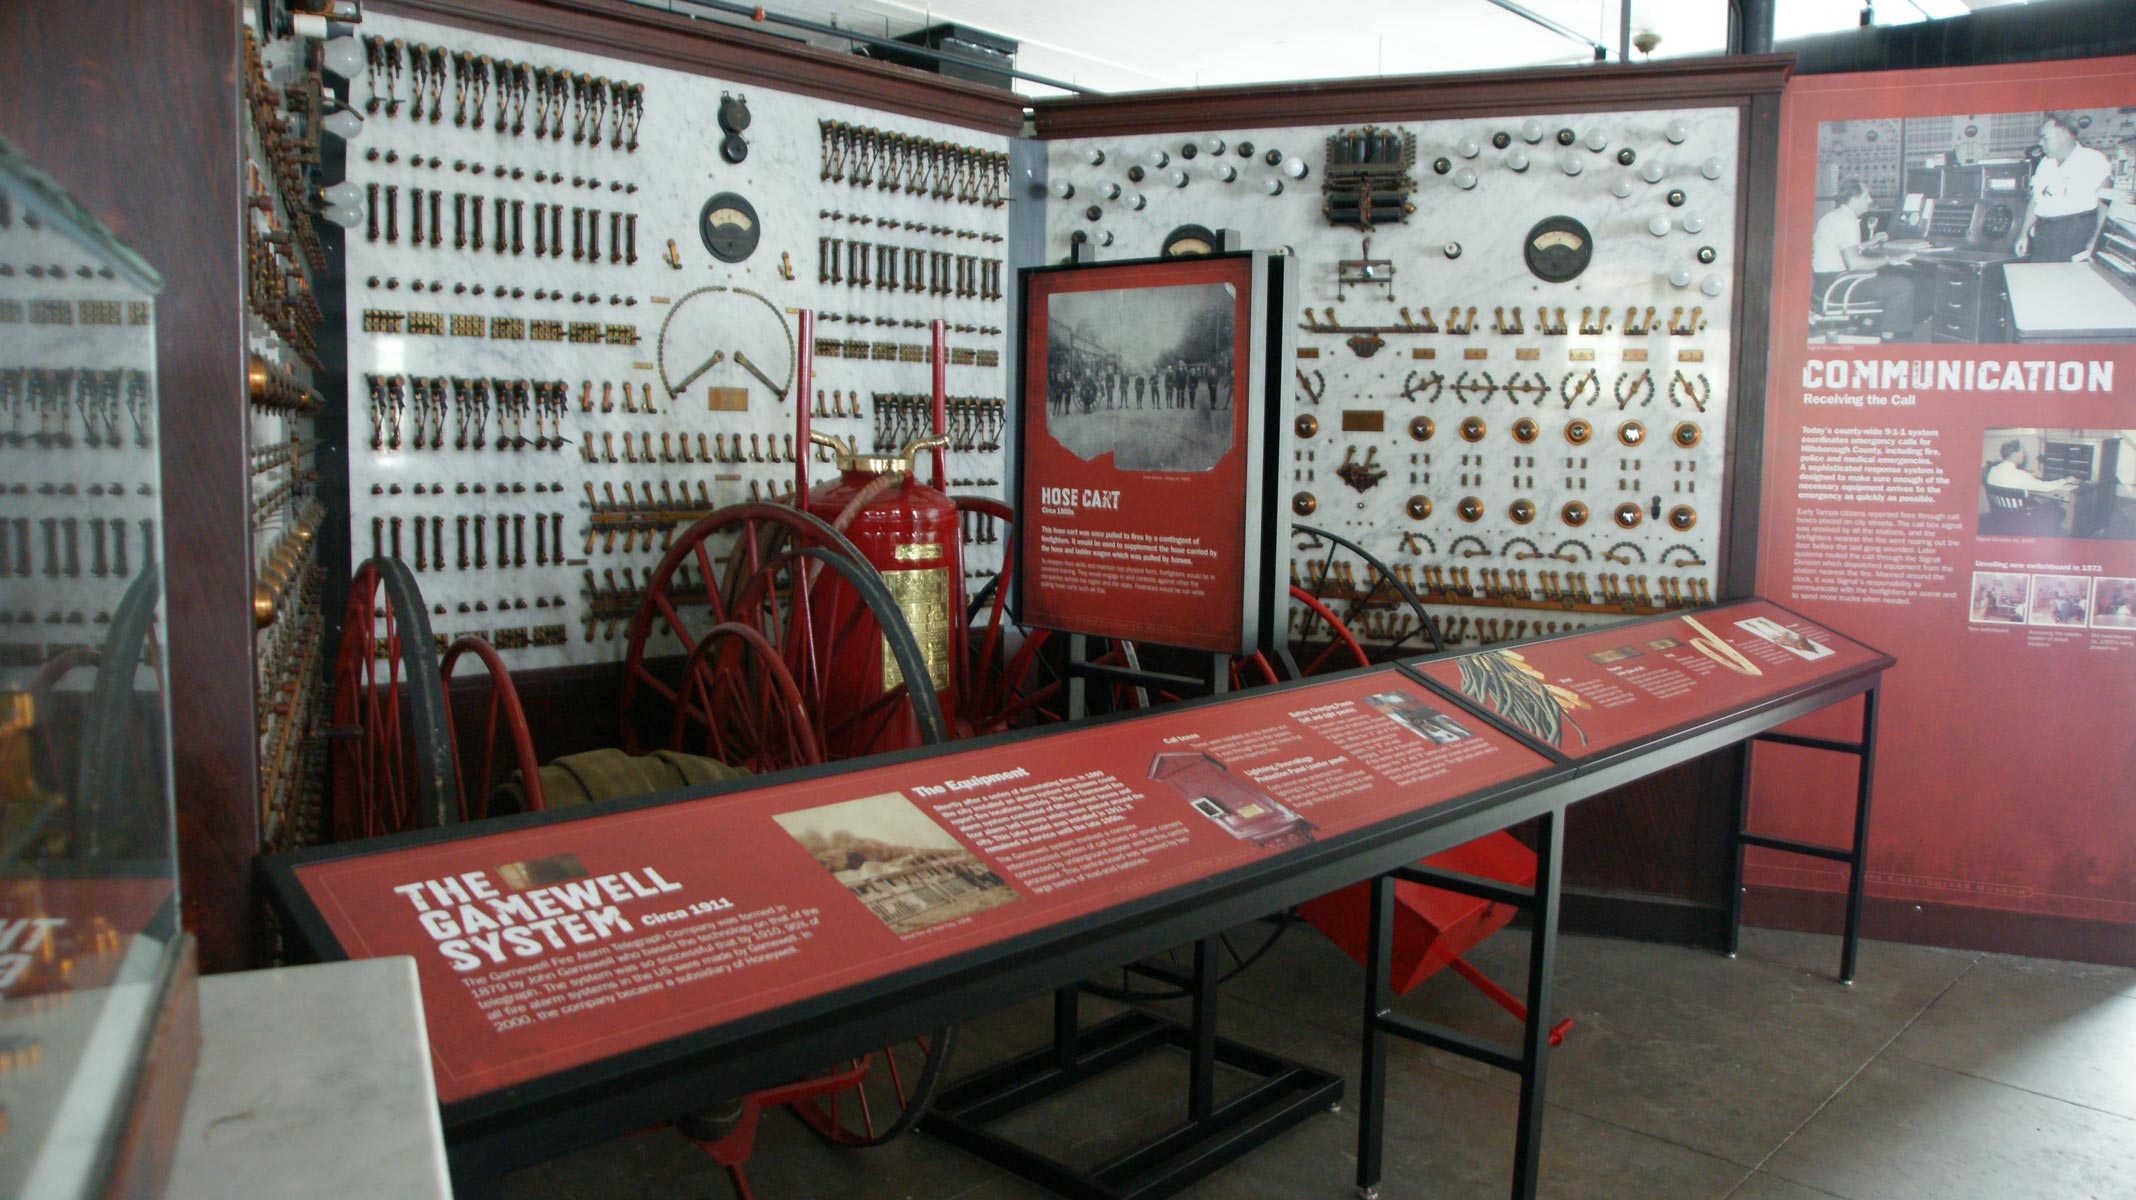 This exhibit reveals the operation of the Gamewell Alarm panel.